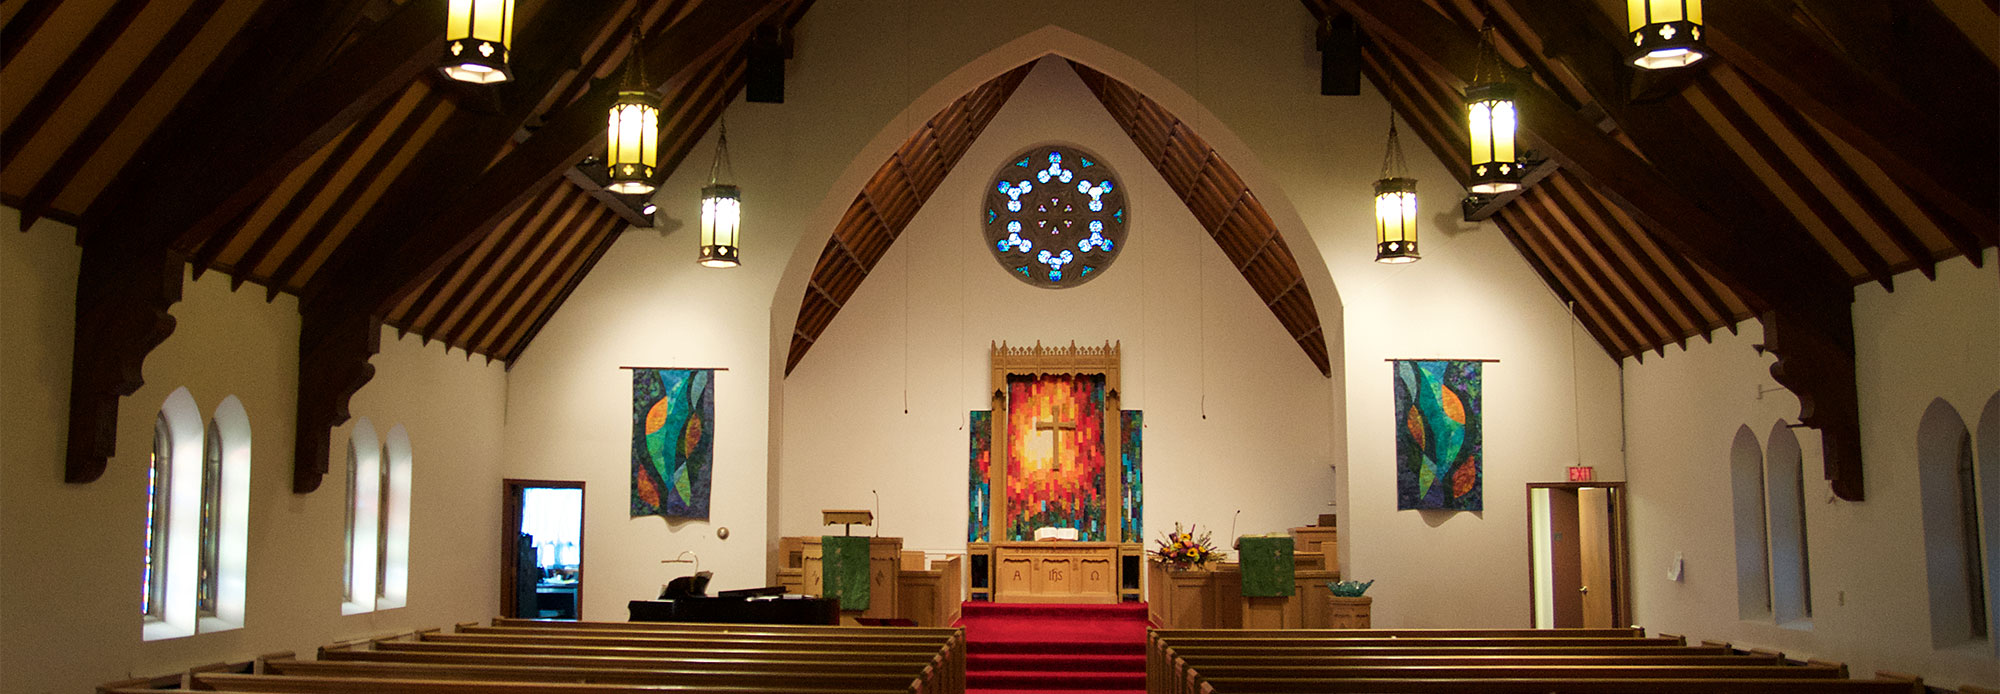 The sanctuary at Edina Morningside Community Church.